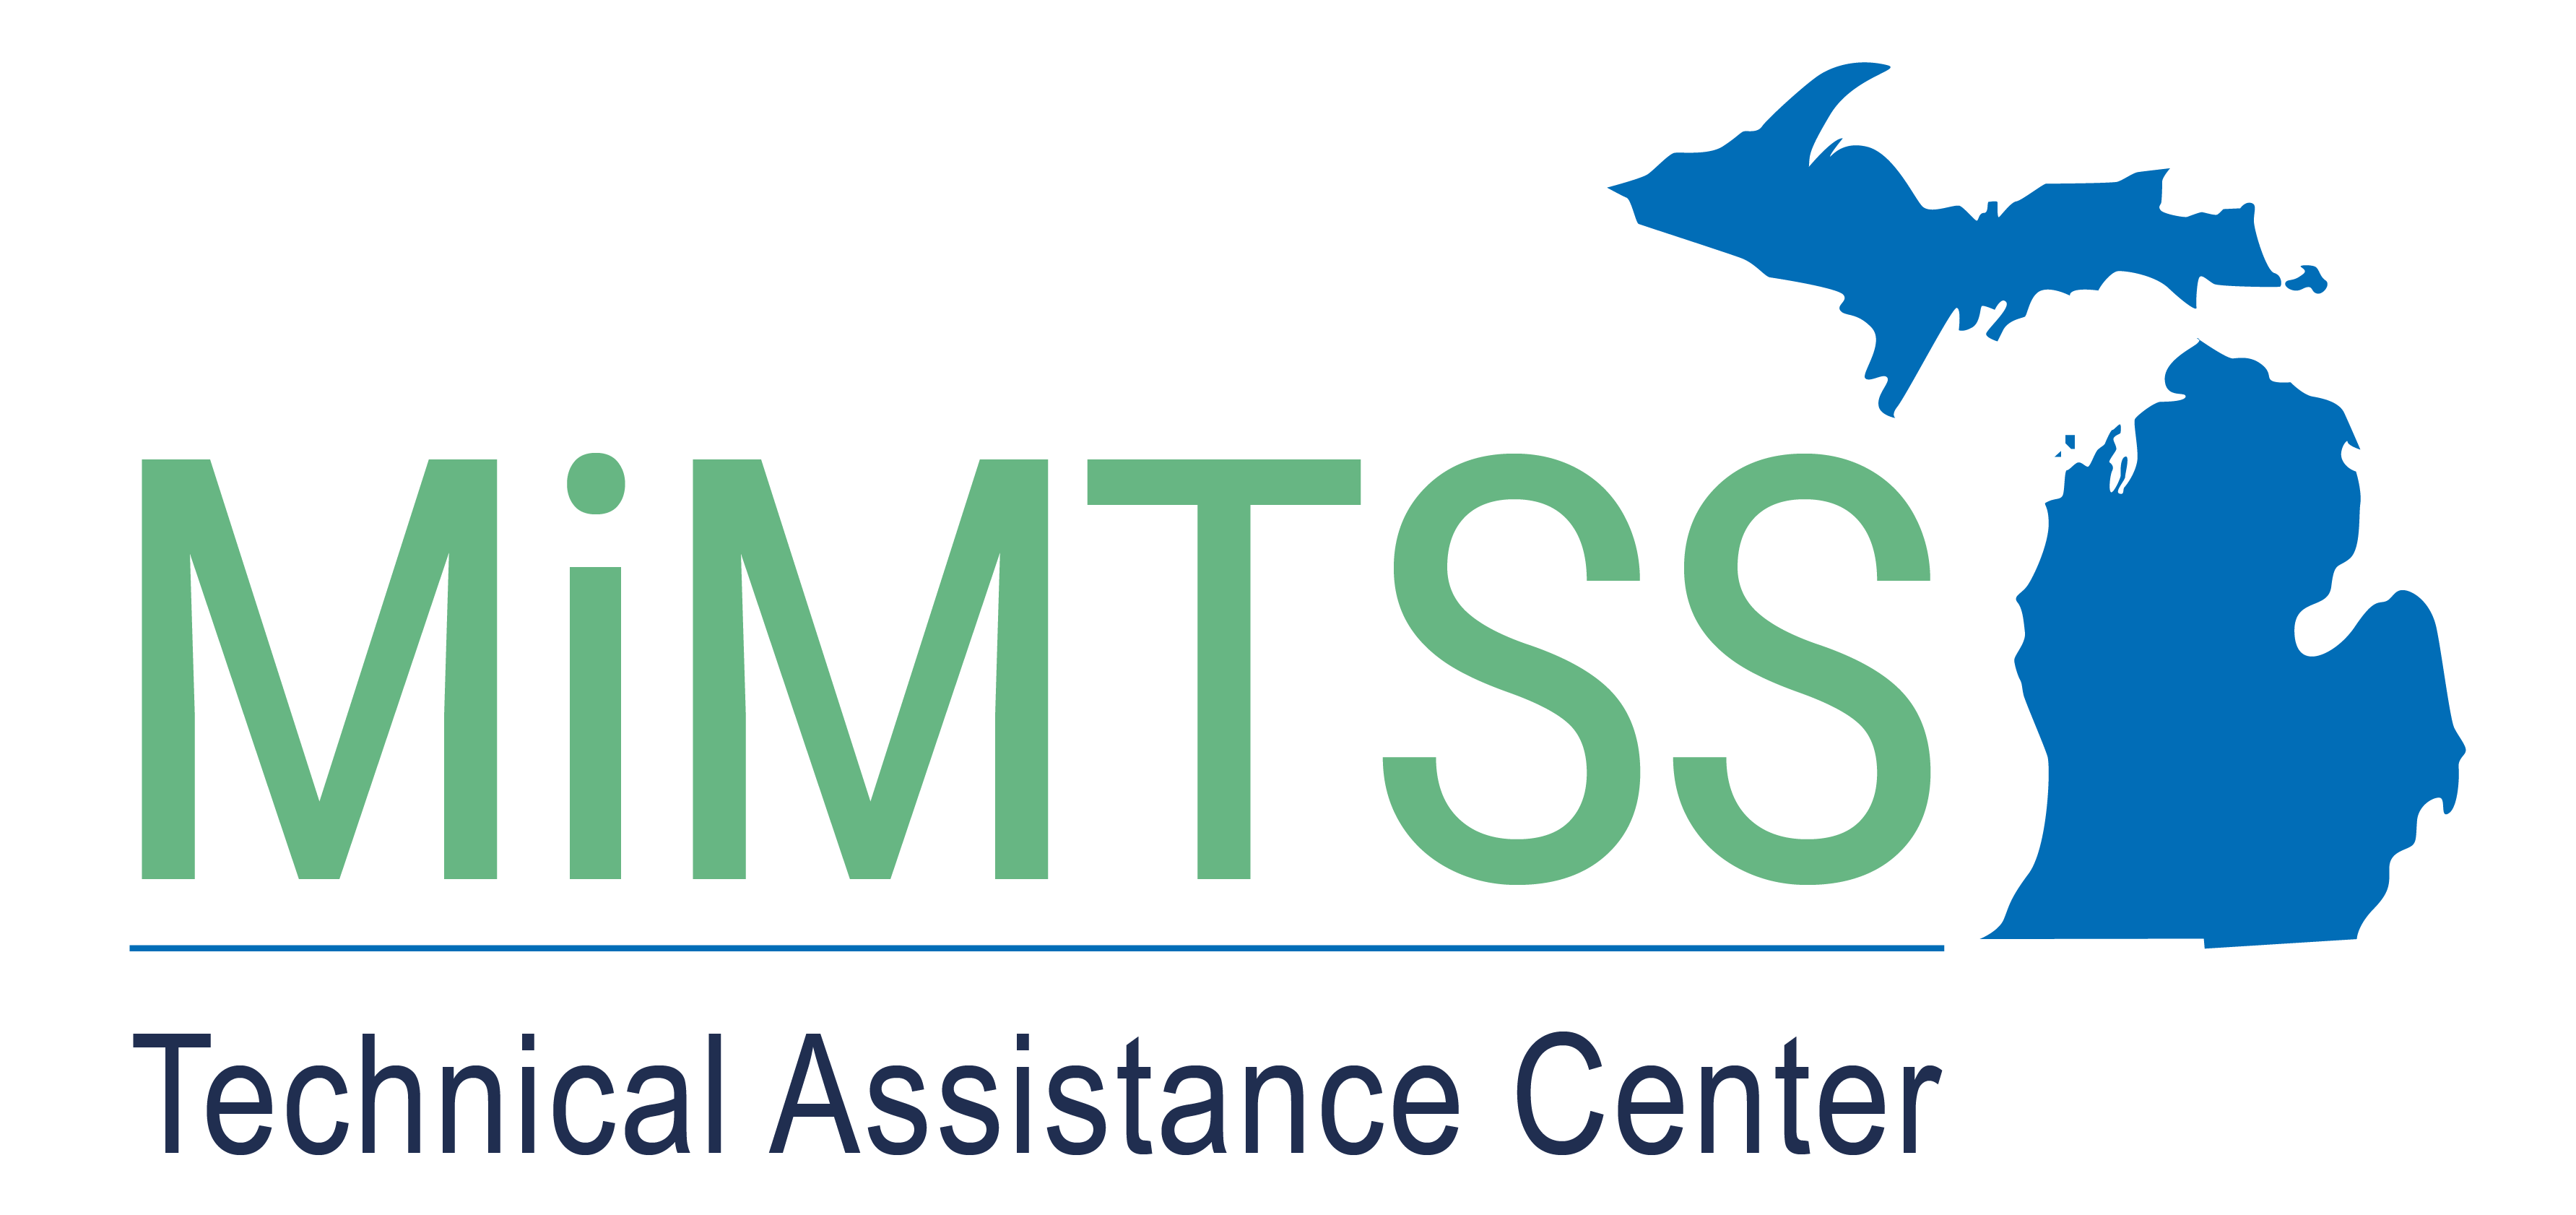 Michigan's MTSS Technical Assistance Center: Home